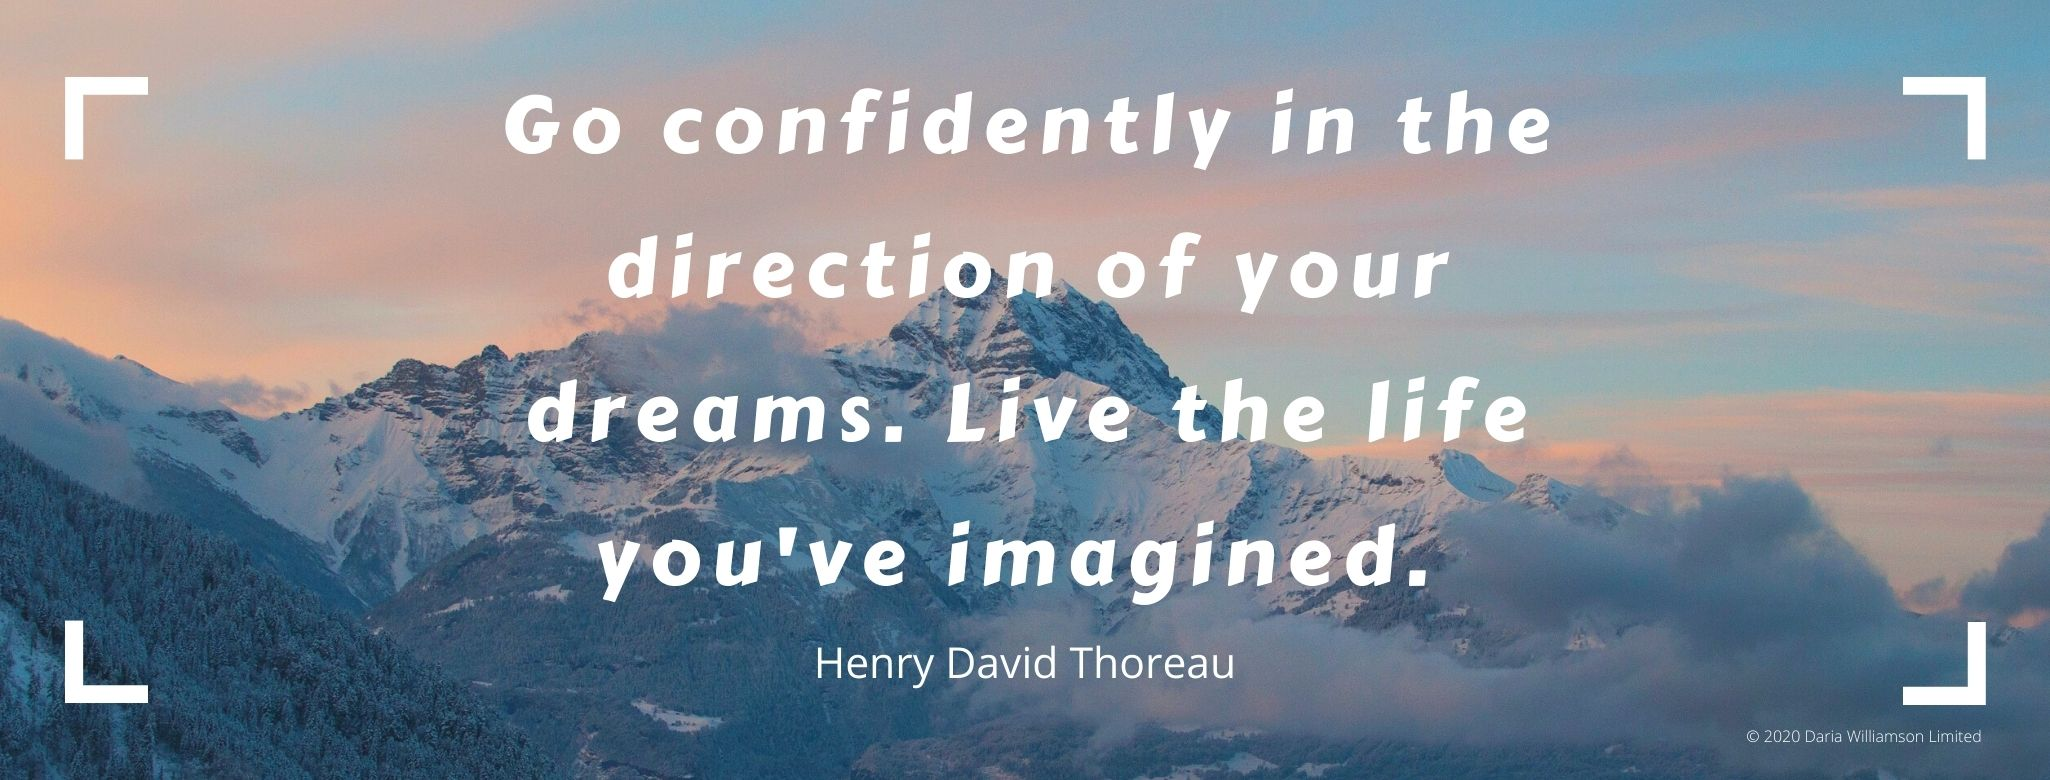 "Text over a picture of mountains. Text says ""Go confidently in the direction of your dreams. Live the life you've imagined. Henry David Thoreau"""